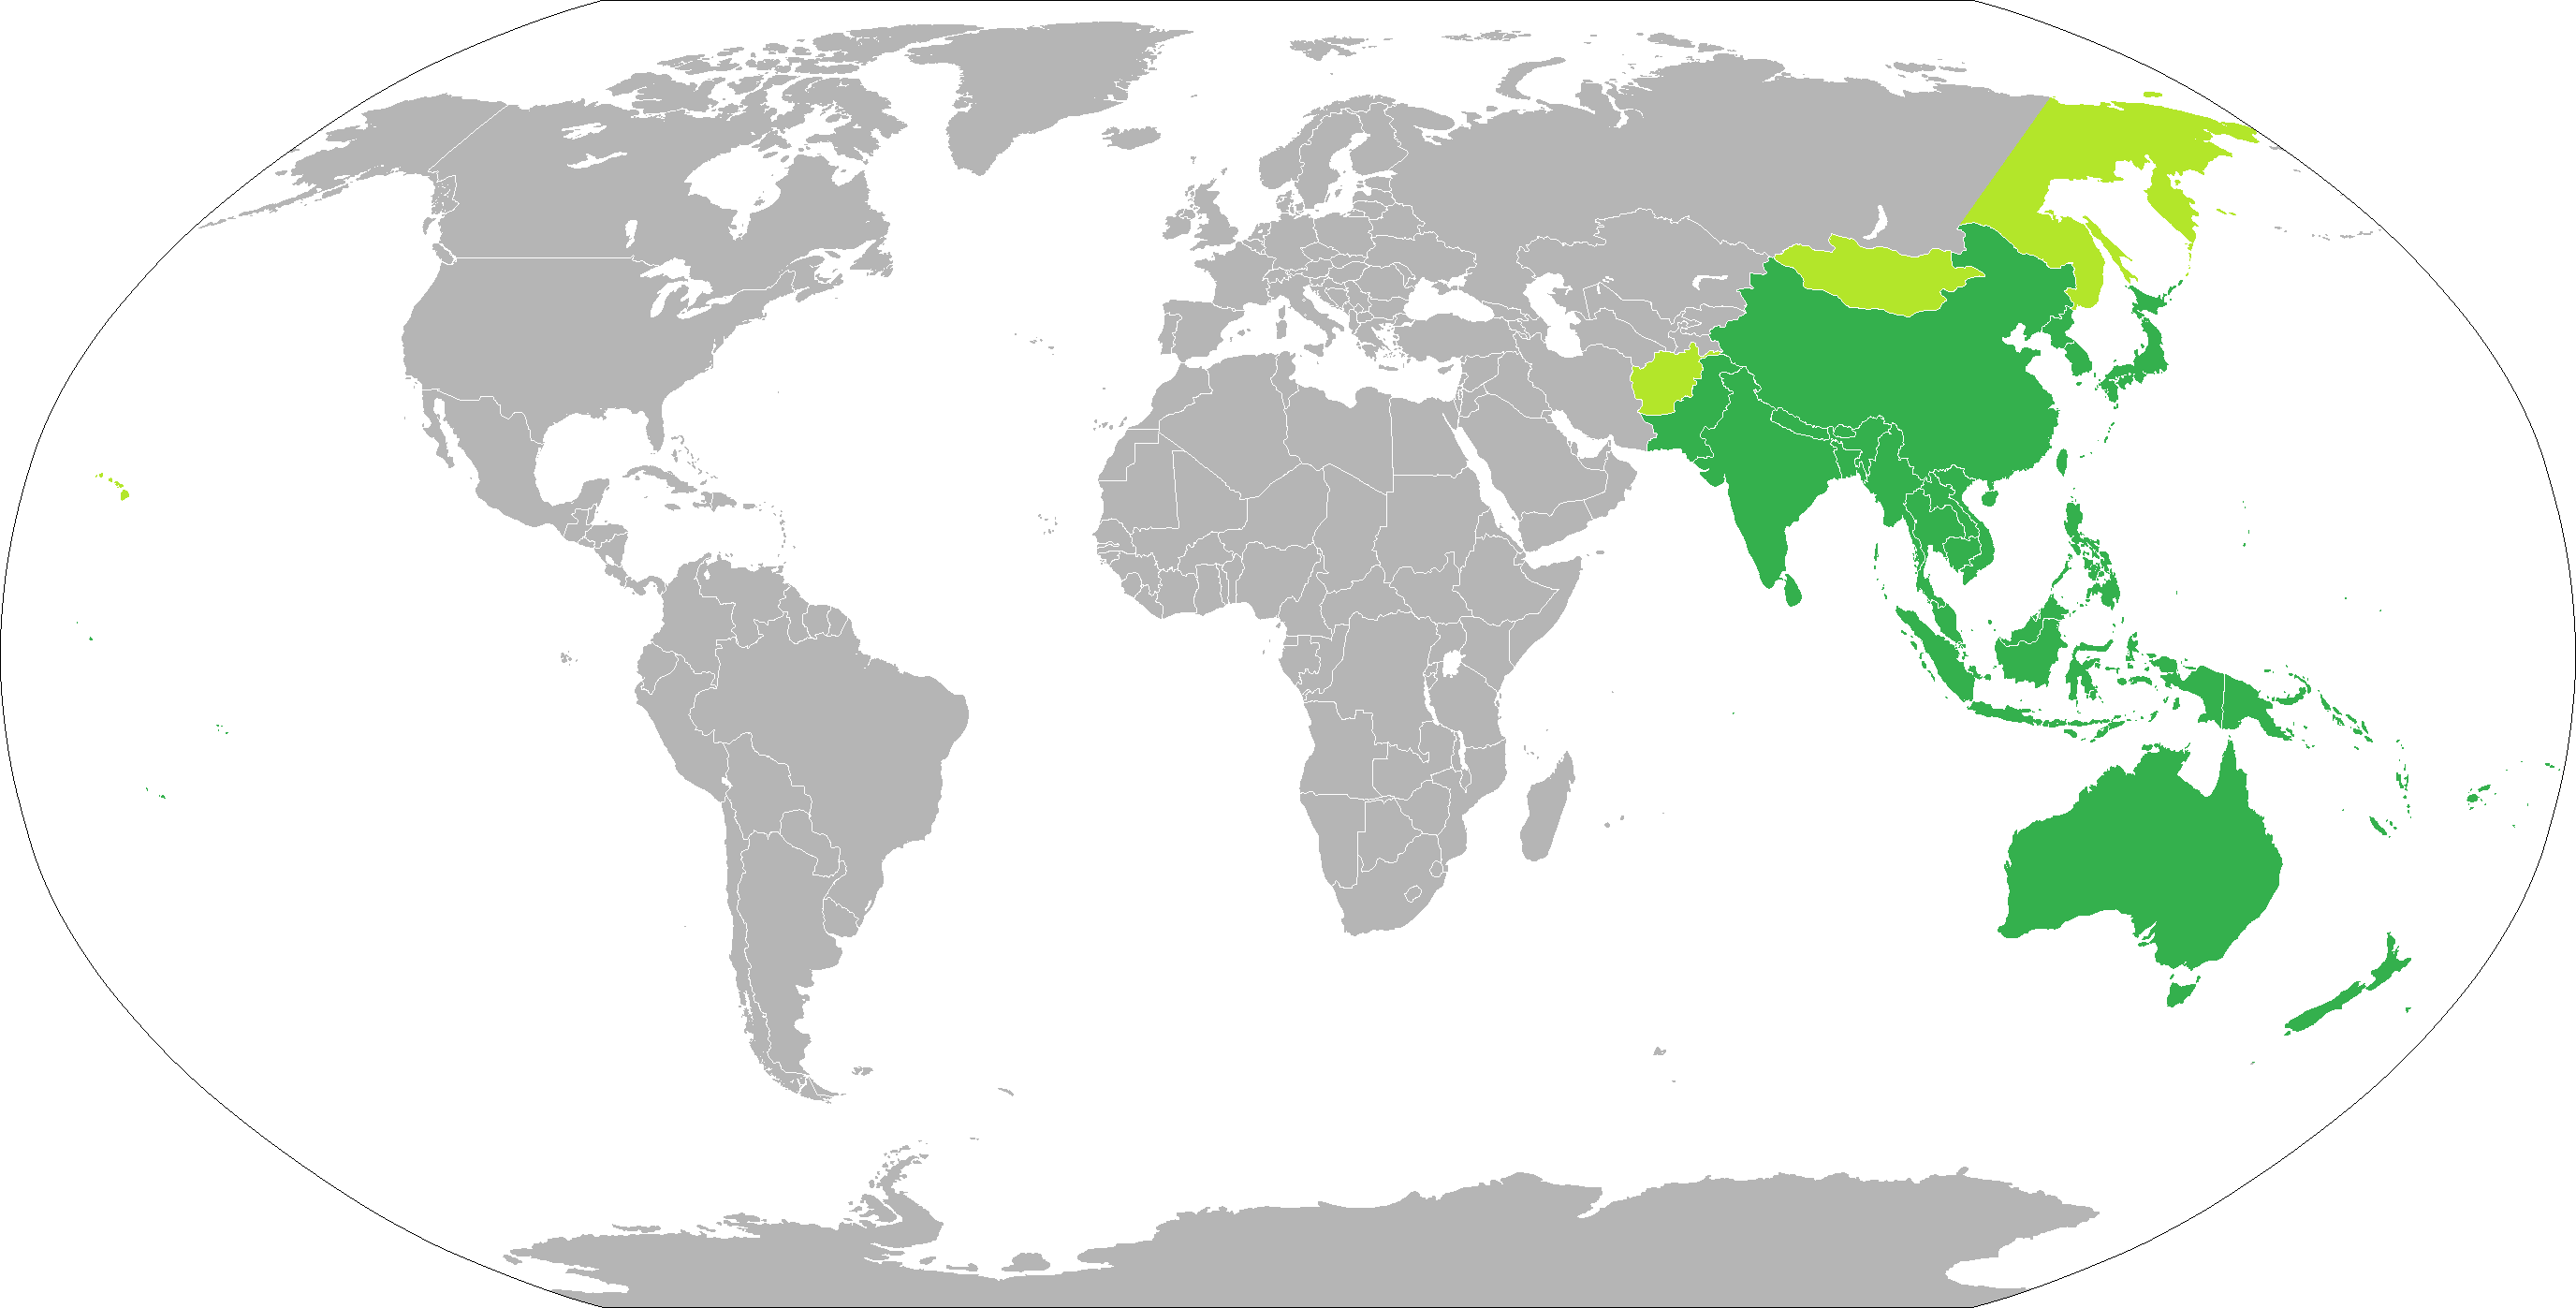 Map of Asia Pacific Countries